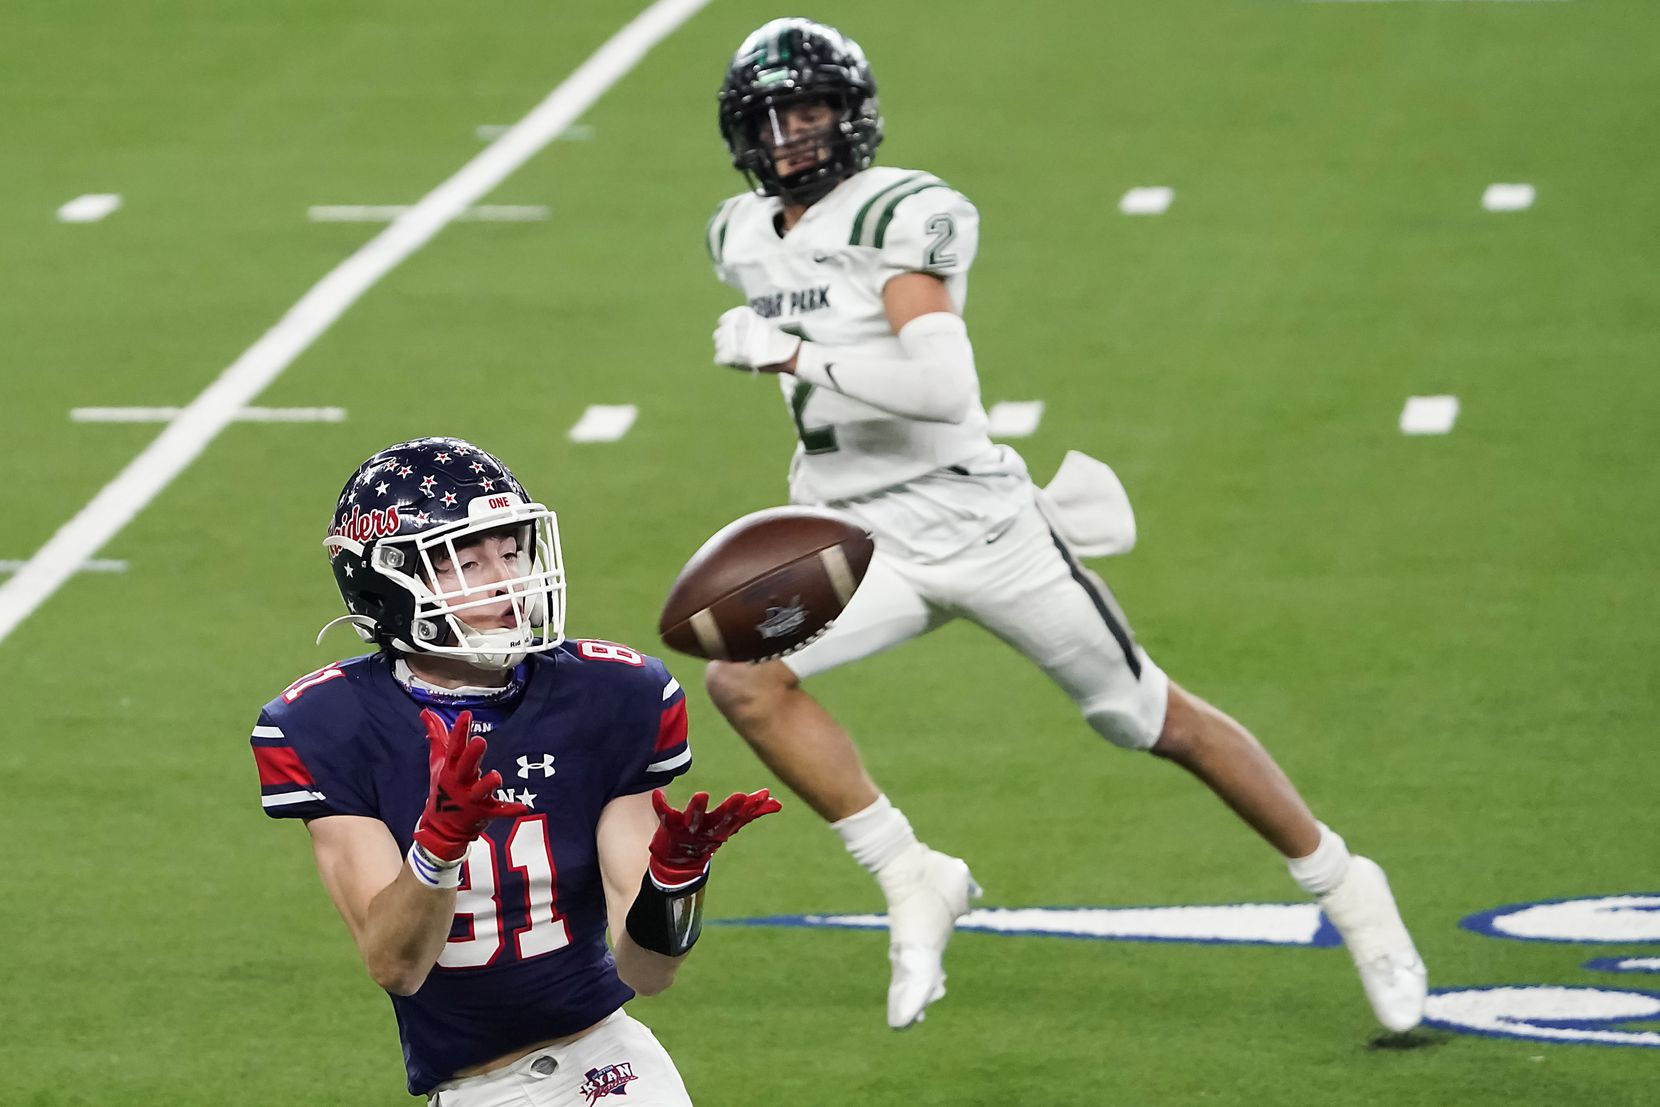 Denton Ryan wide receiver Keagan Cunningham (81) hauls in a 52-yard touchdown pass from quarterback Seth Henigan as Cedar Park defensive back Blake Burton (2) defends during the first half of the Class 5A Division I state football championship game at AT&T Stadium on Friday, Jan. 15, 2021, in Arlington, Texas. (Smiley N. Pool/The Dallas Morning News)